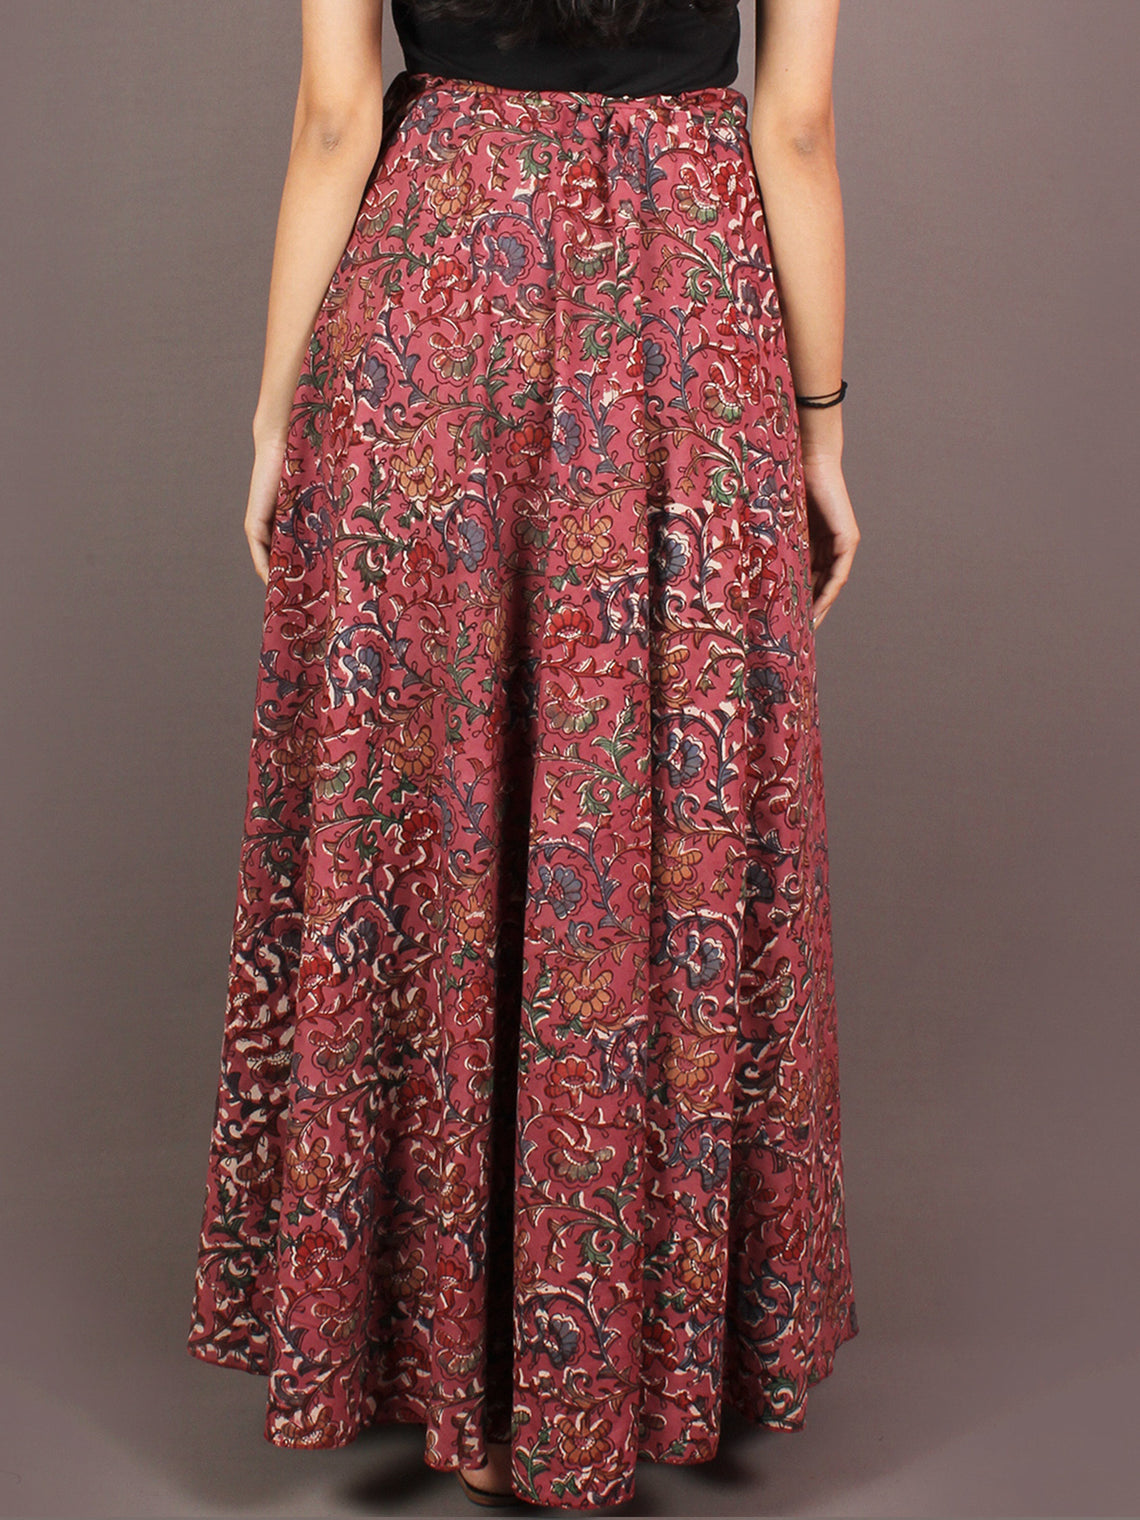 Hand Block Printed Wrap Around Skirt In Salmon Pink Multi Colour - S401001